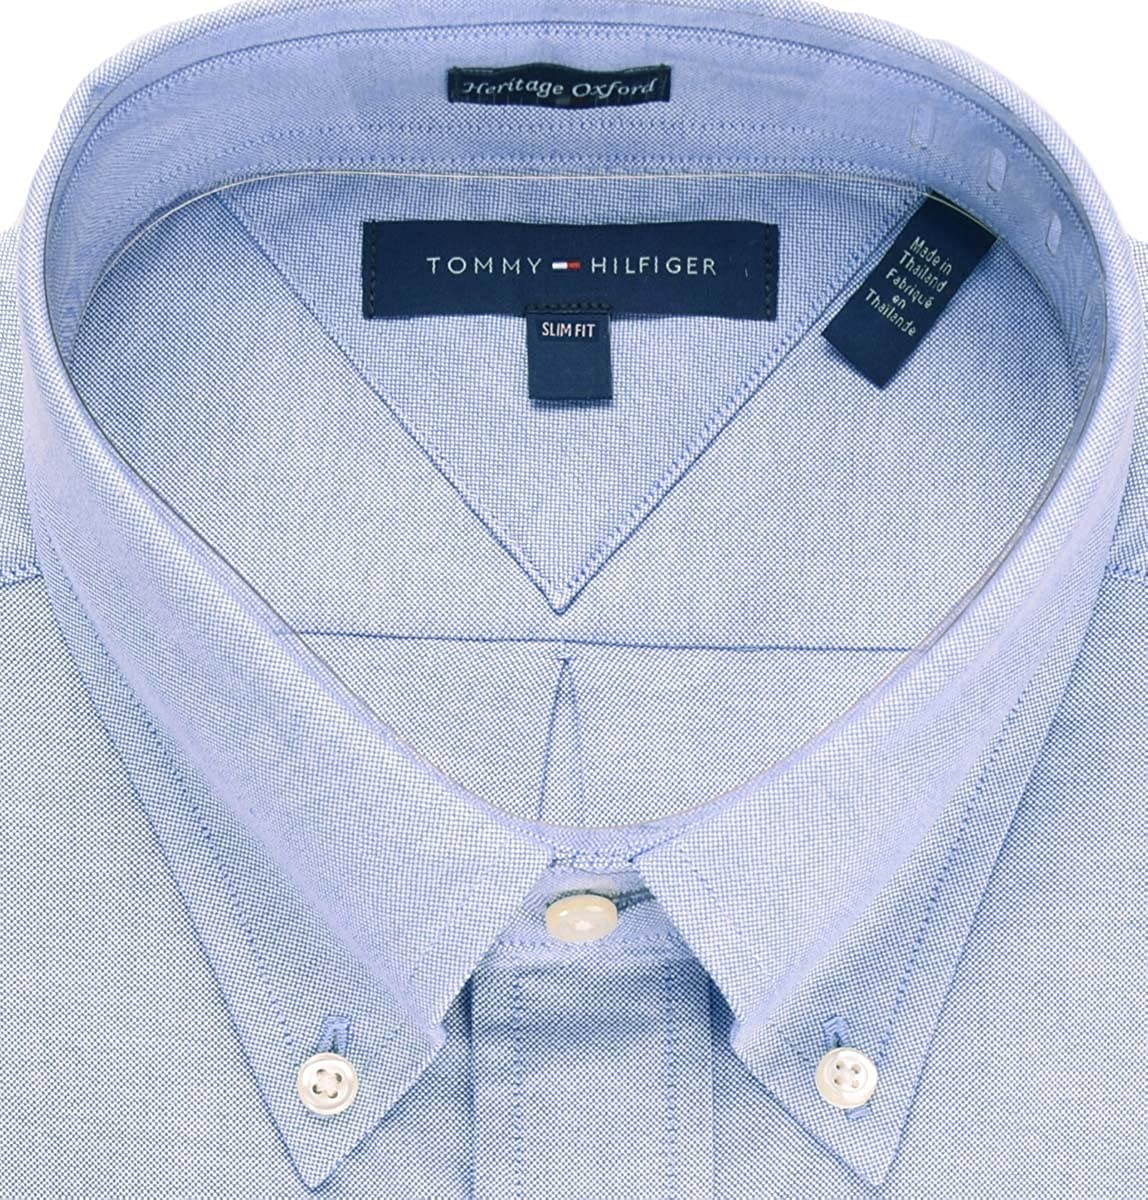 25d9ea634 Tommy Hilfiger Mens Slim Fit Long Sleeves Button-Down Shirt at Amazon Men's  Clothing store: